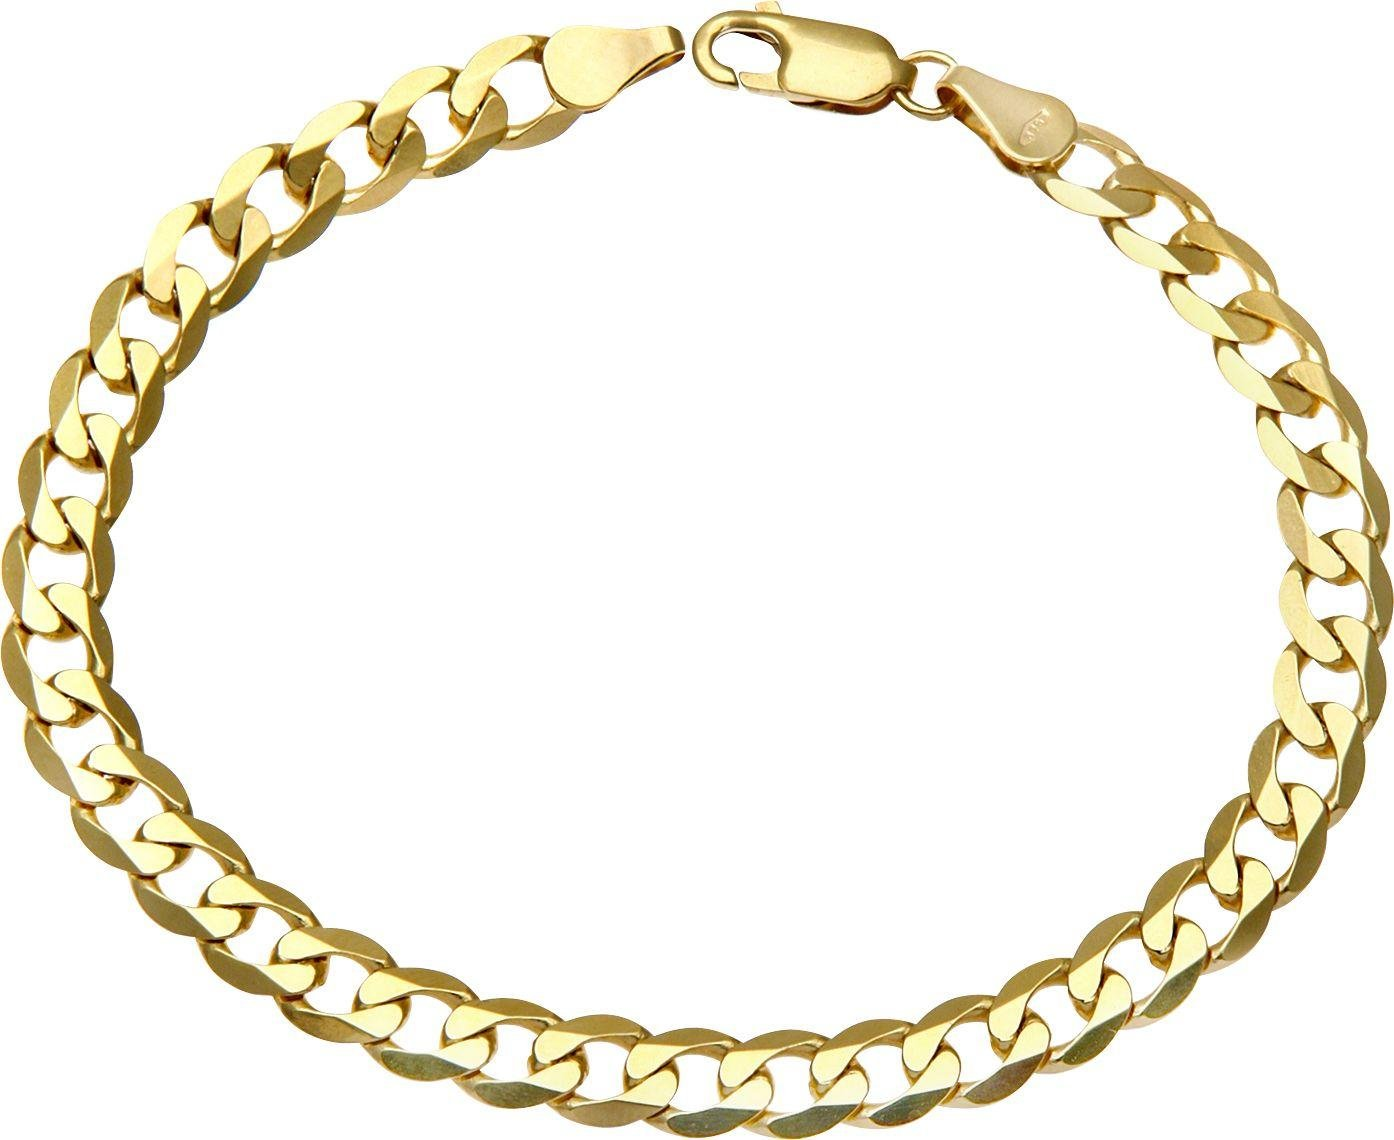 Image of 9ct Gold 7.25 inch Curb Bracelet - 6mm